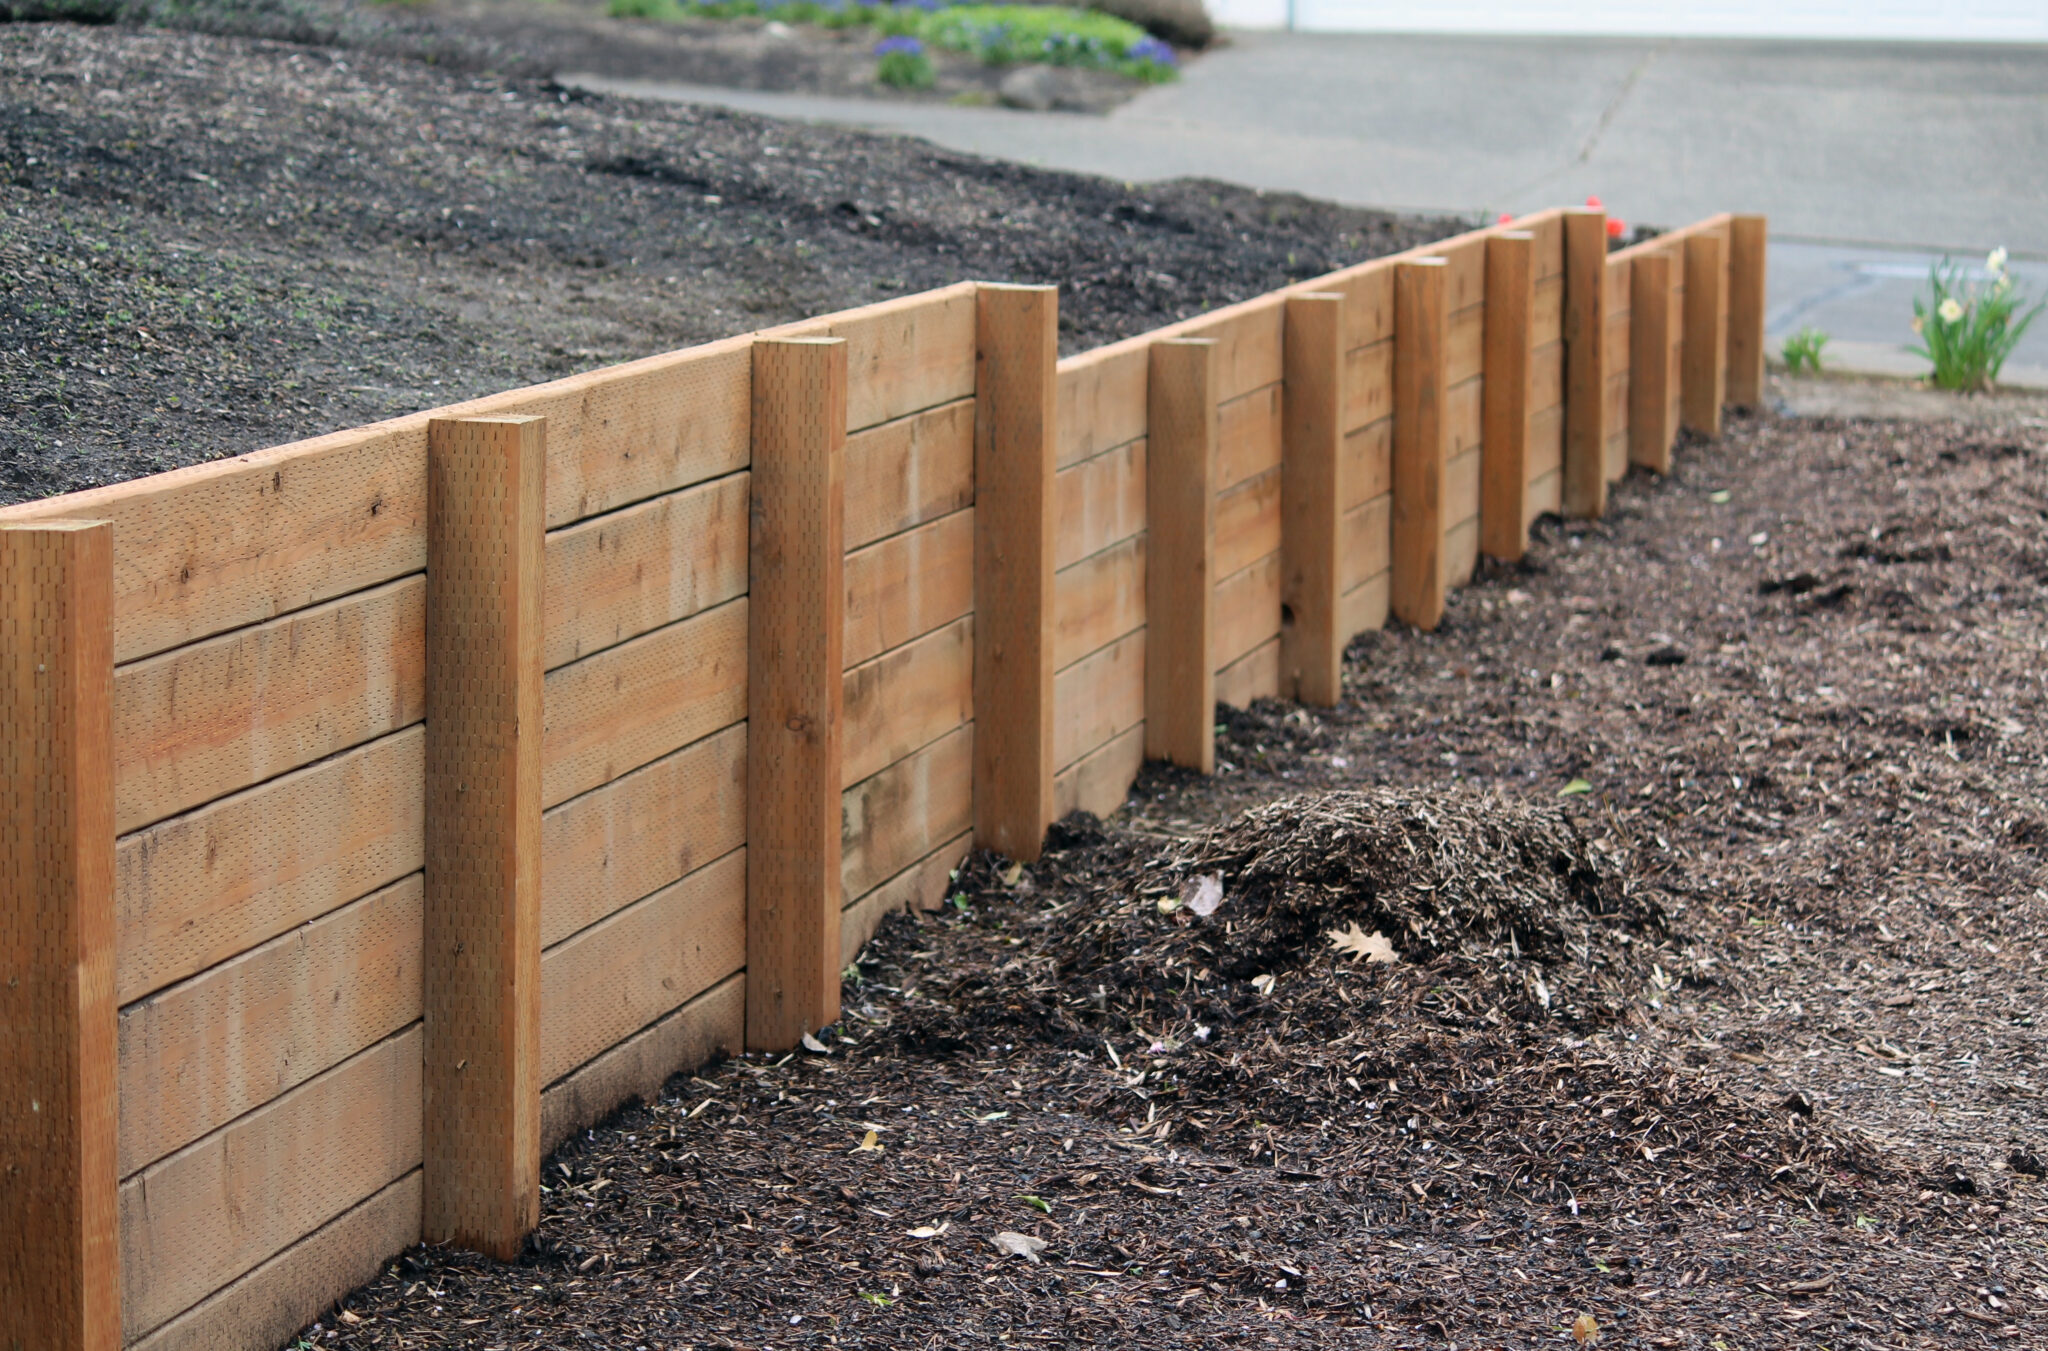 A retaining wall in a dirt yard.